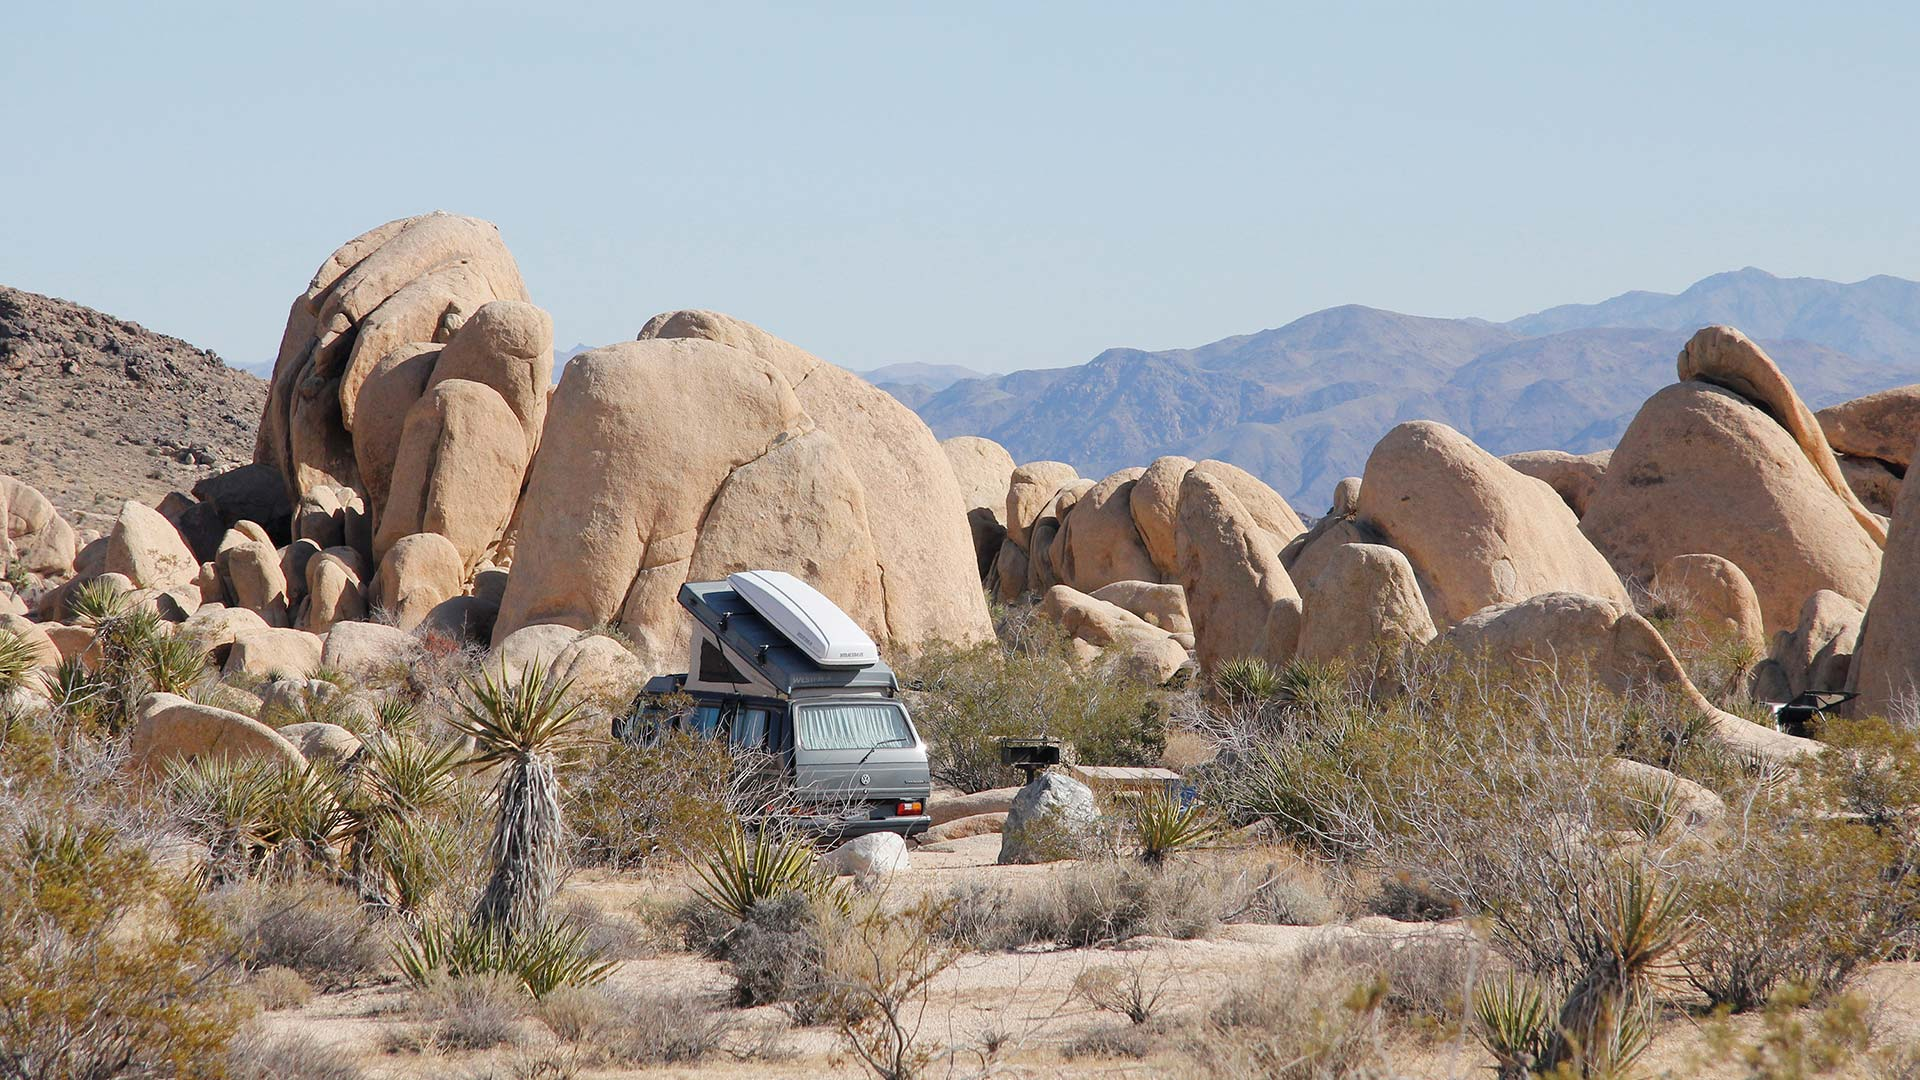 A camper van at Joshua Tree's White Tank Campground.